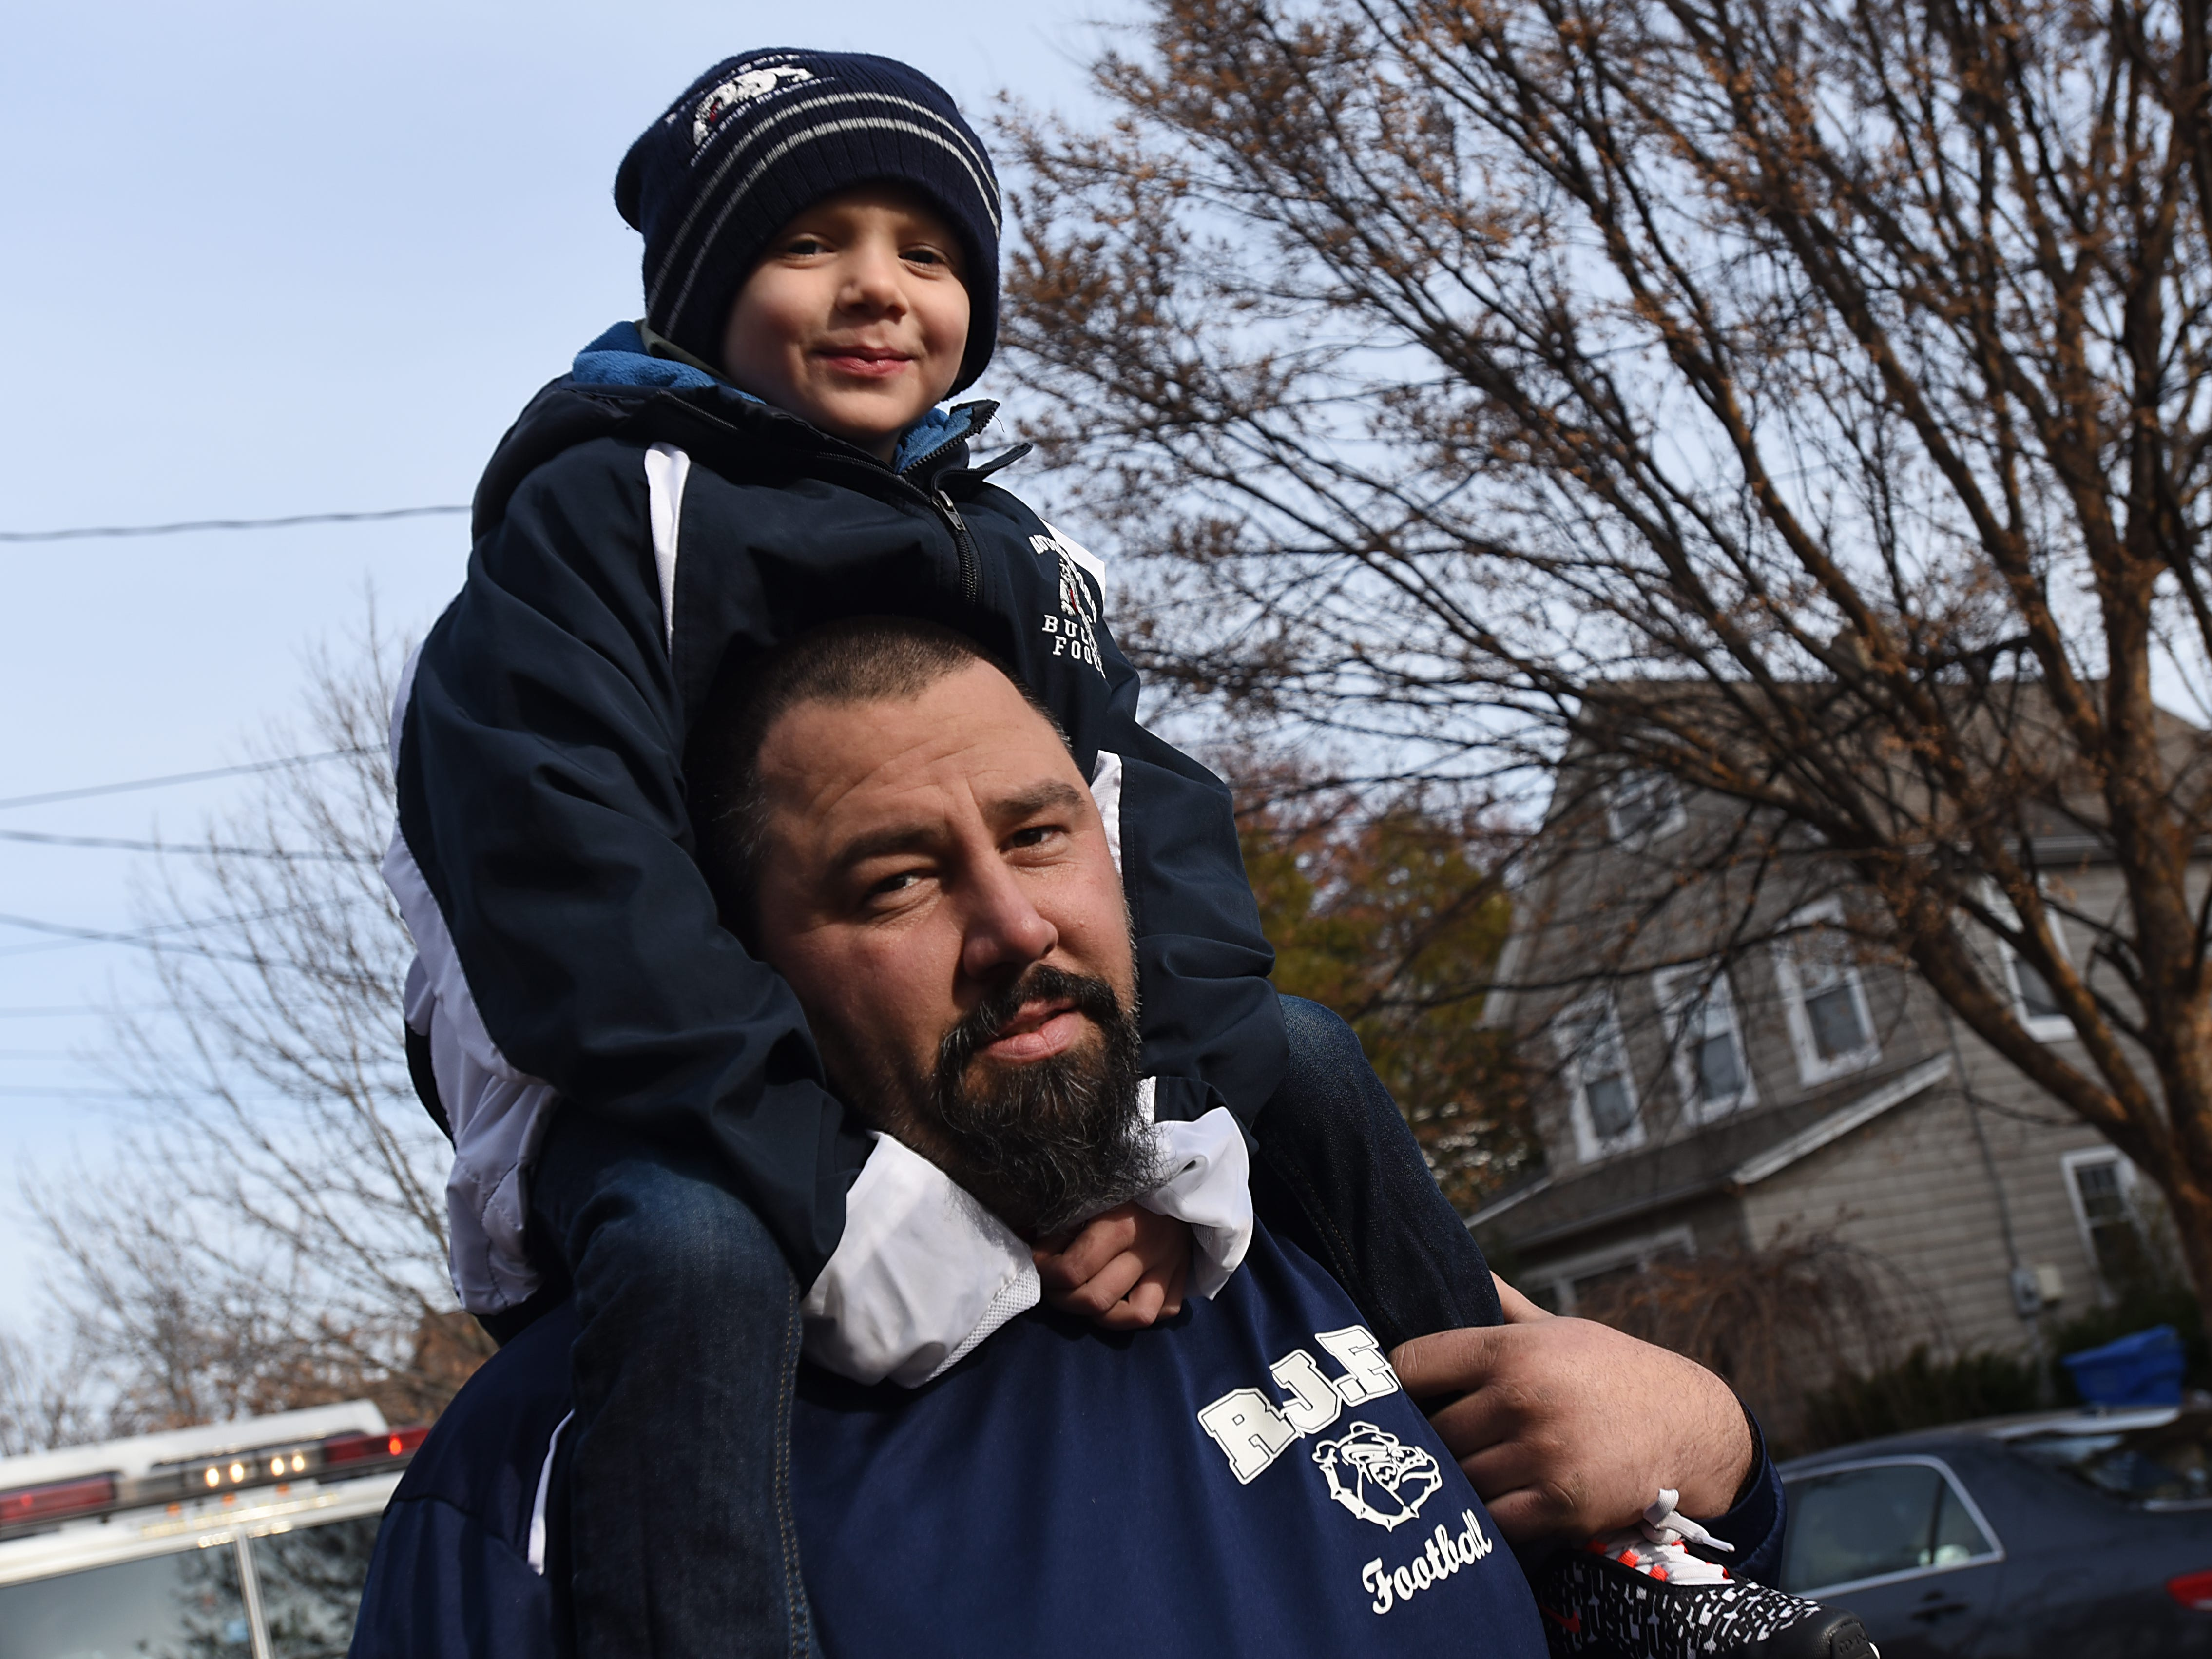 Parker Garofalo, five, rides on Rudy Garofalo's shoulders during the Rutherford Football parade in Rutherford on Saturday December 1, 2018.